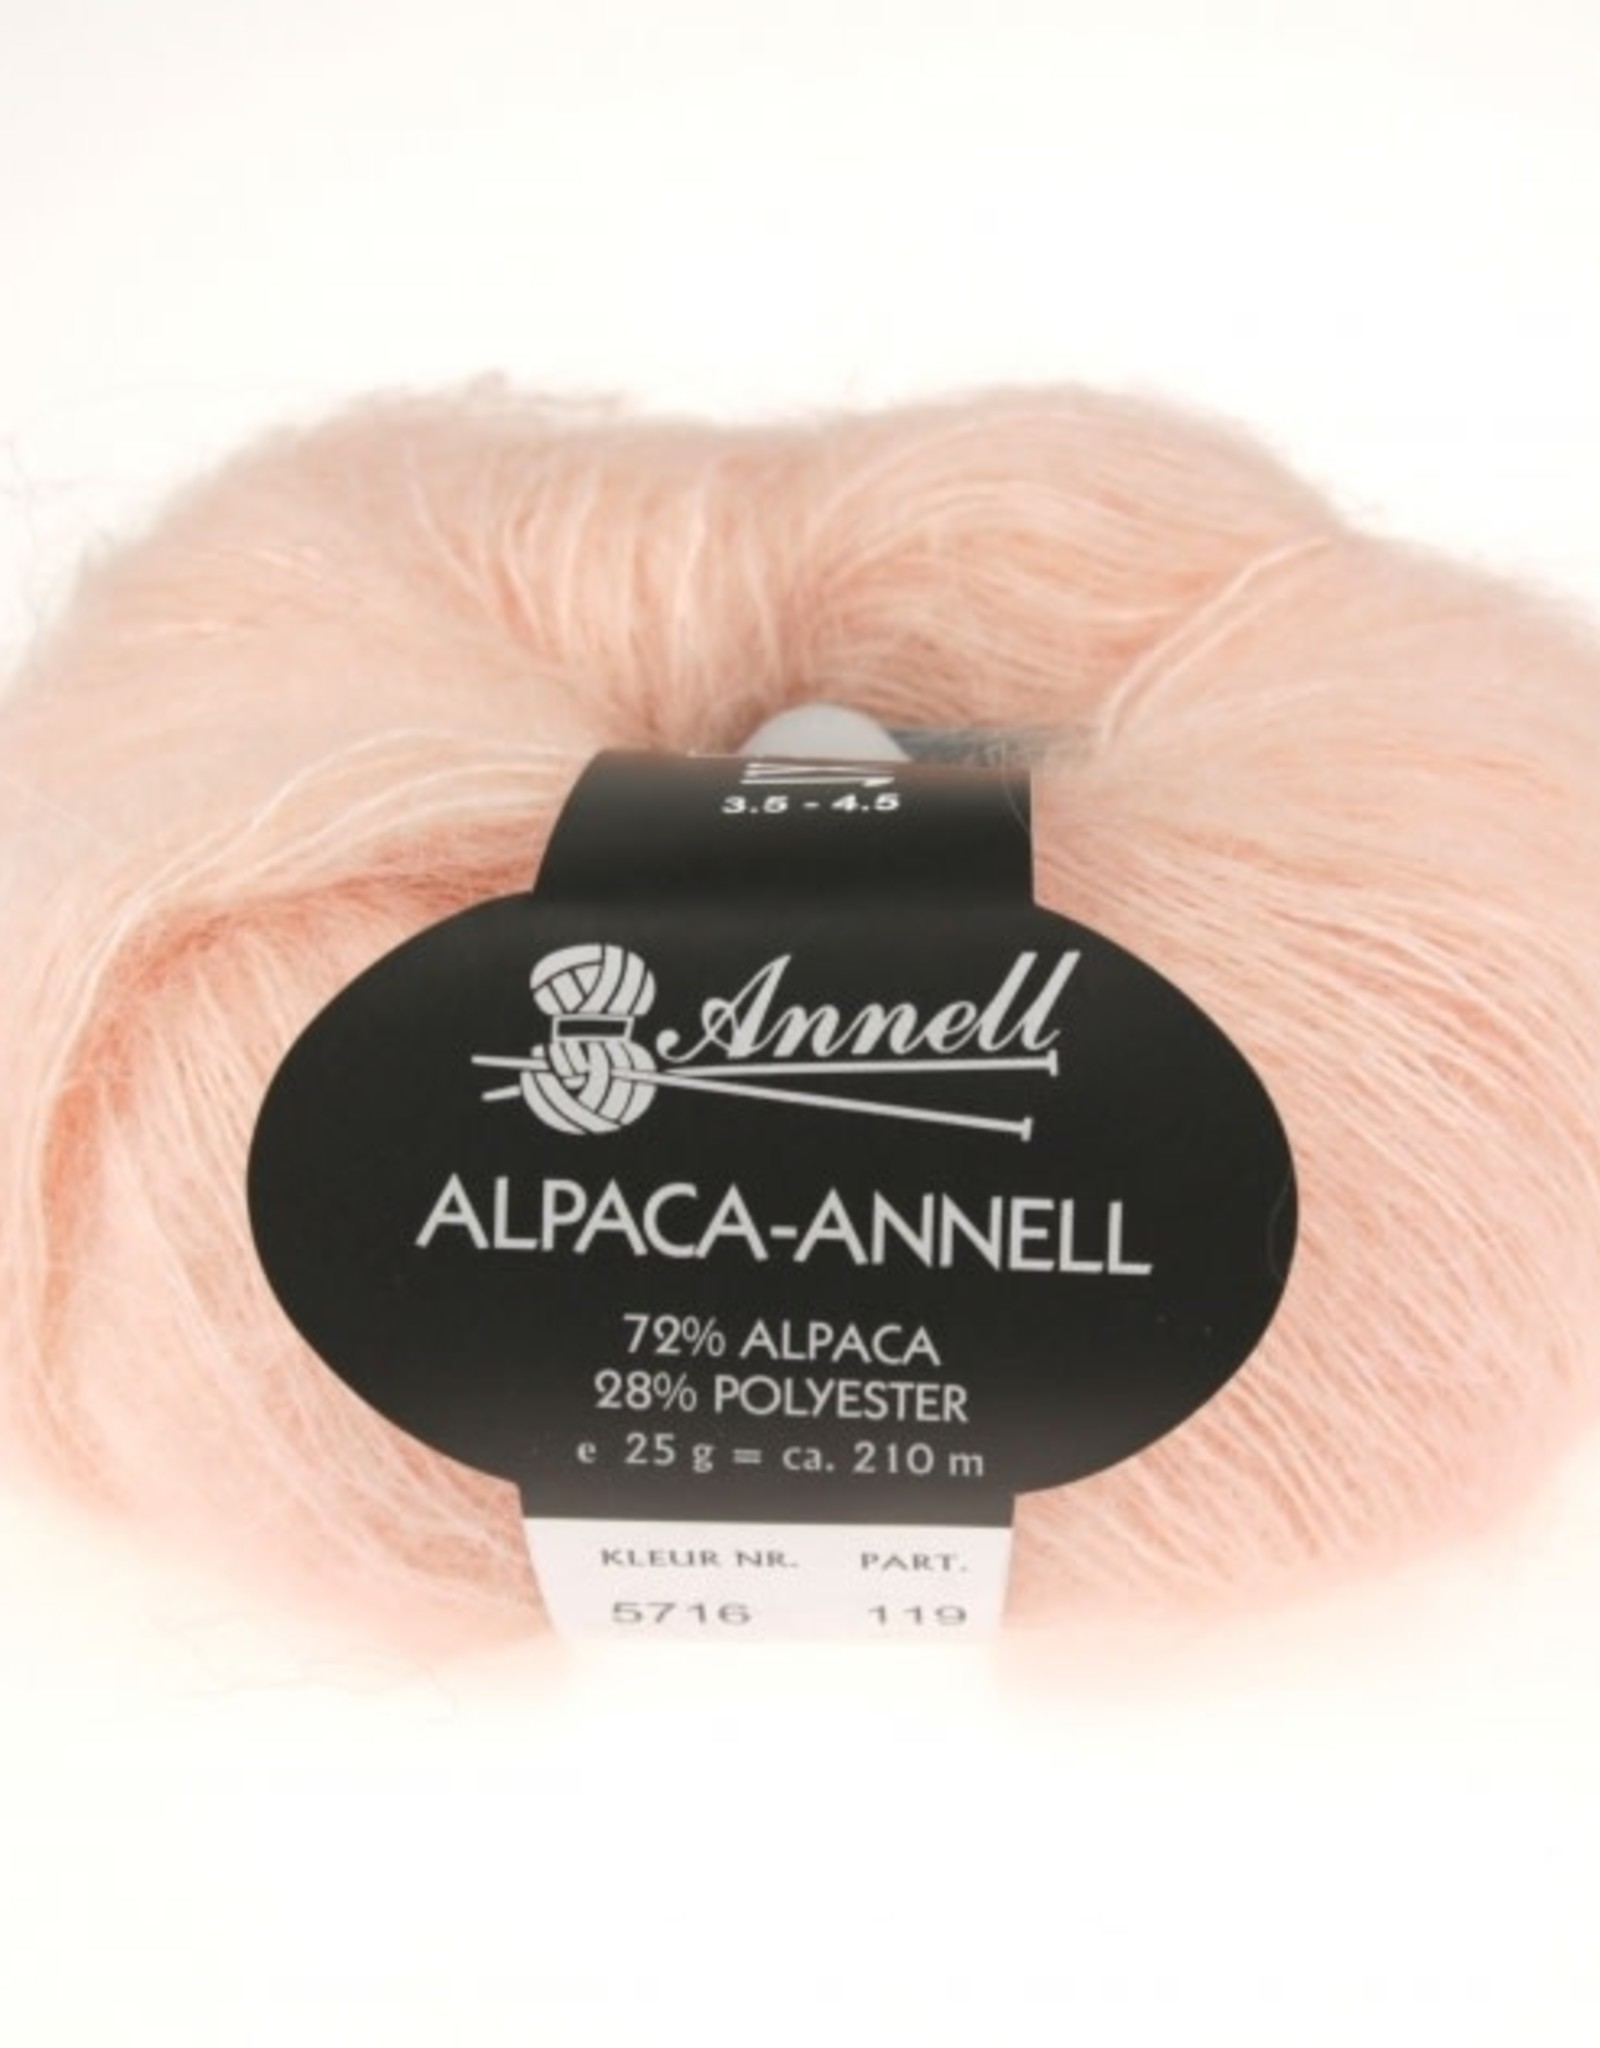 Annell Annell Alpaca Annell 5716 - ABRICOOS ROOS